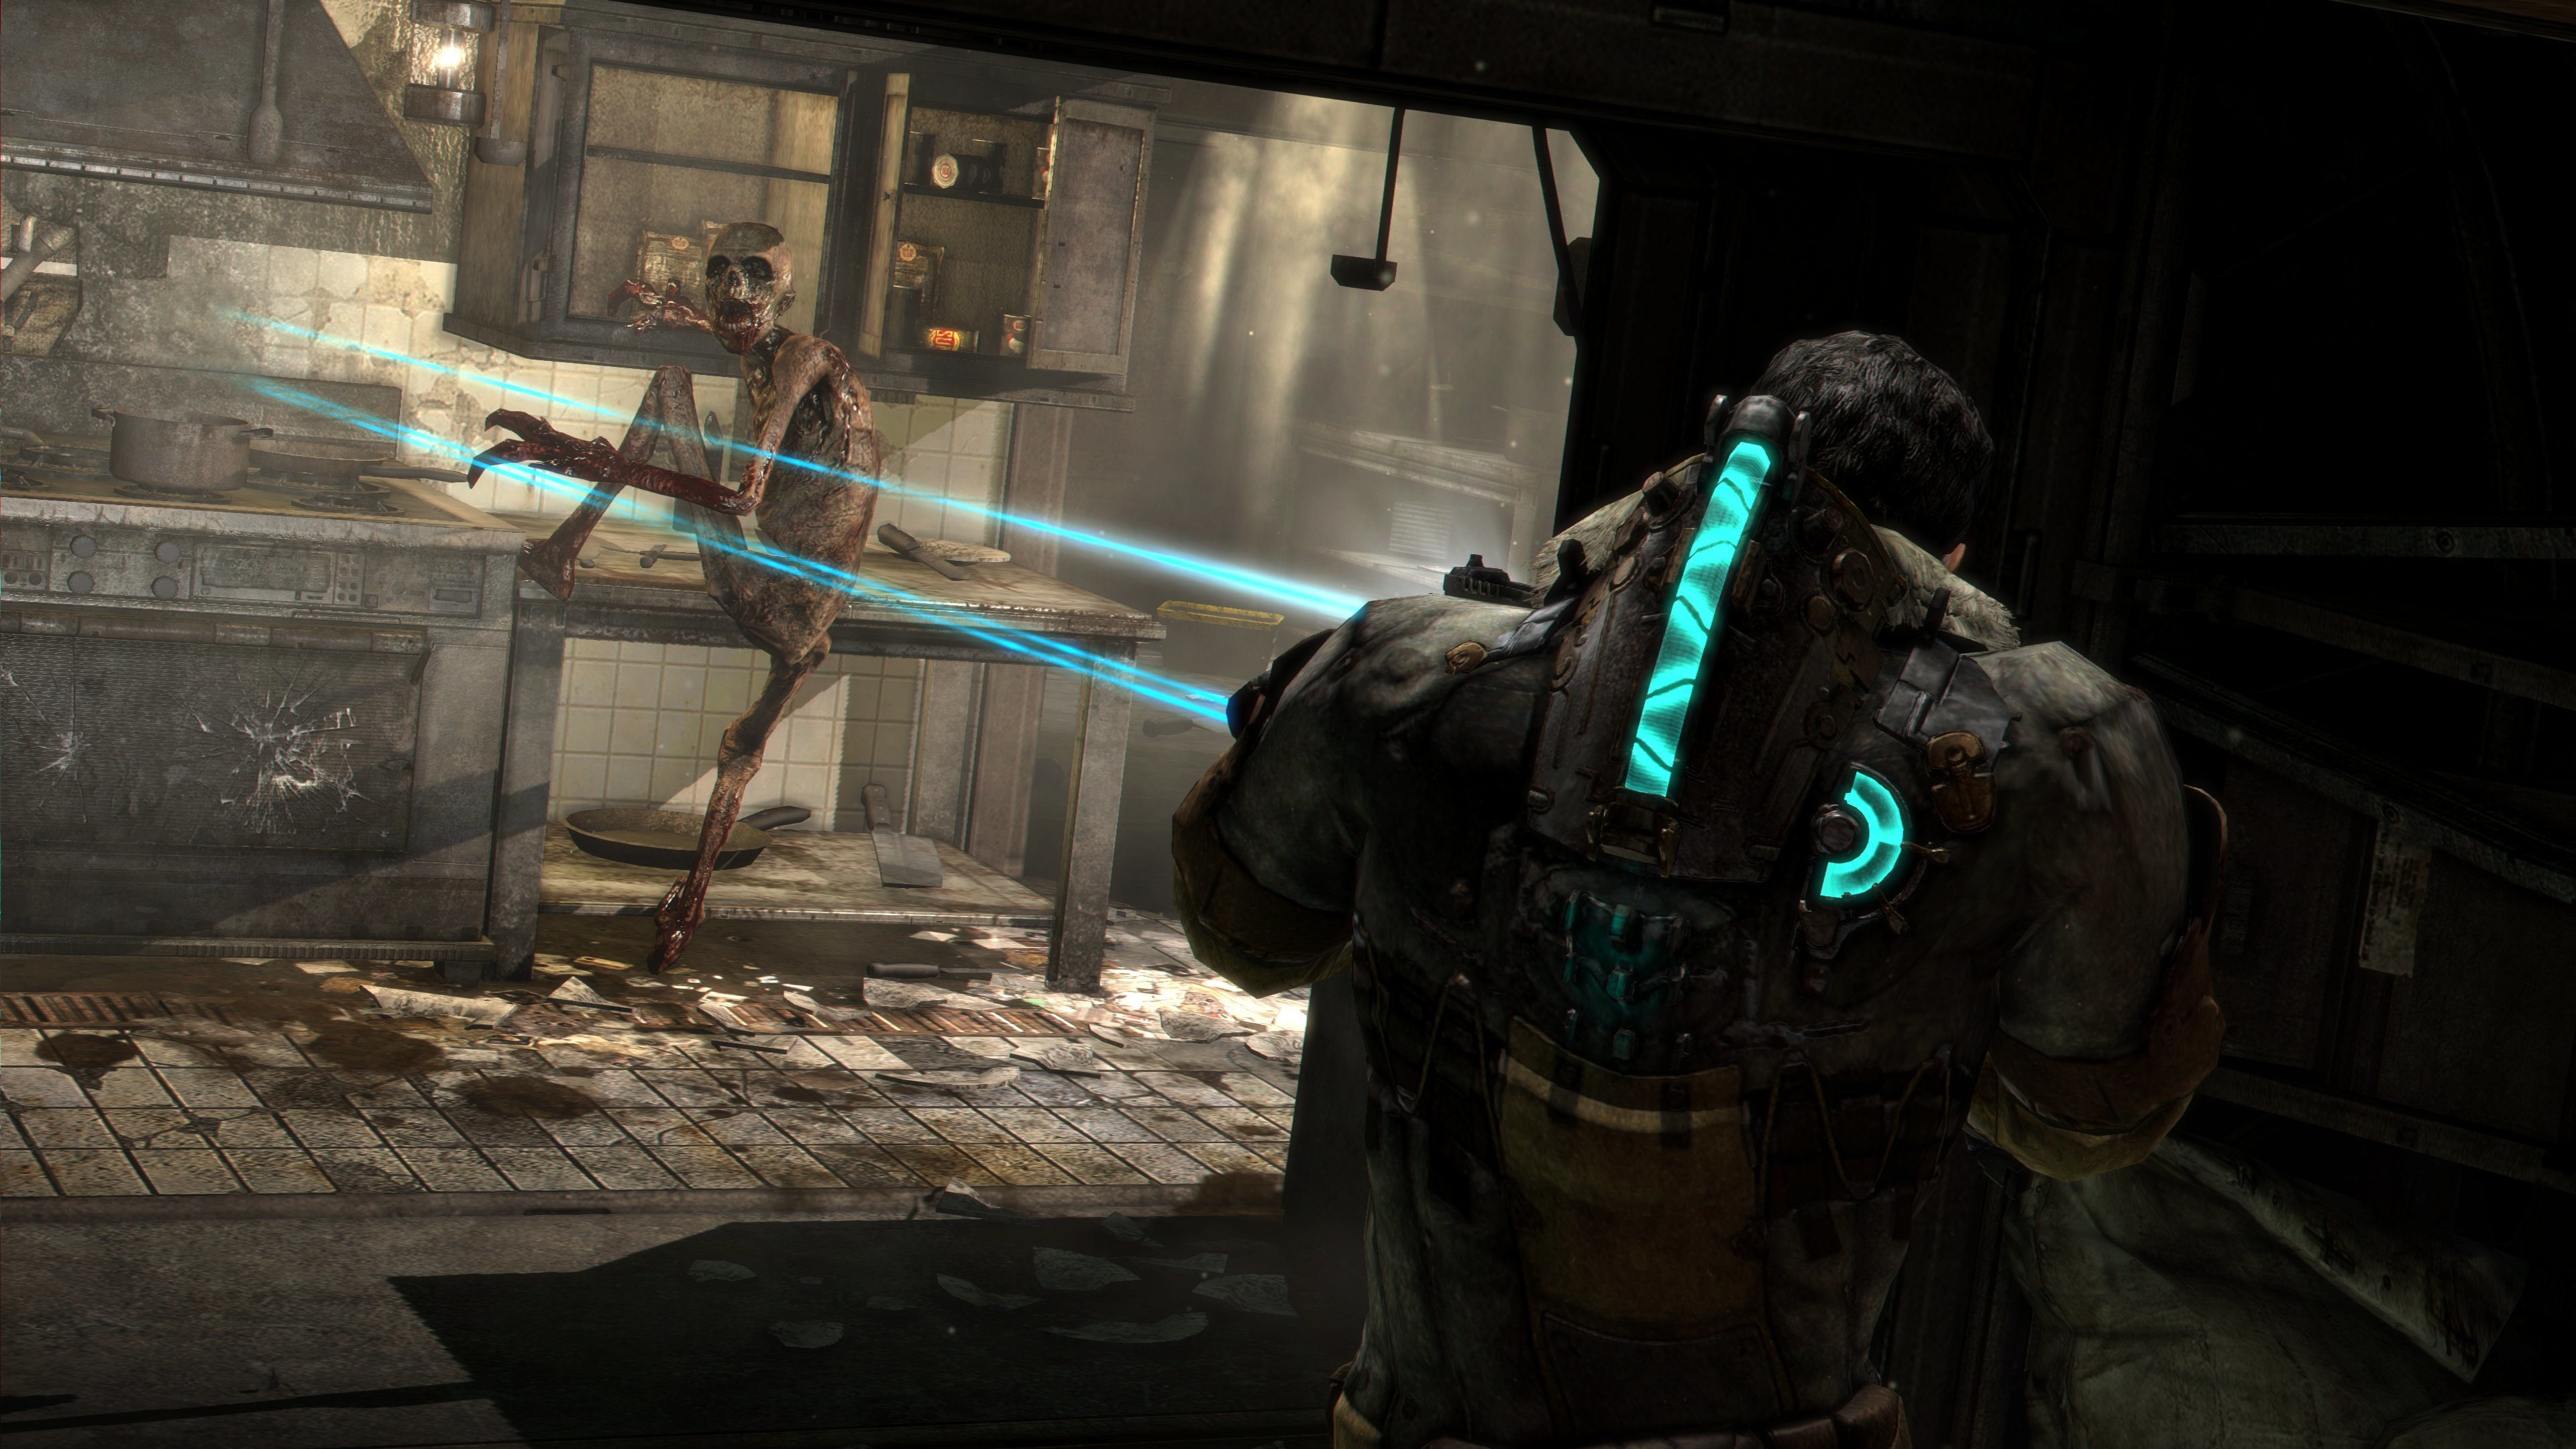 Free Download Dead Space 3 Wallpaper Id - Dead Space 3 Environment , HD Wallpaper & Backgrounds